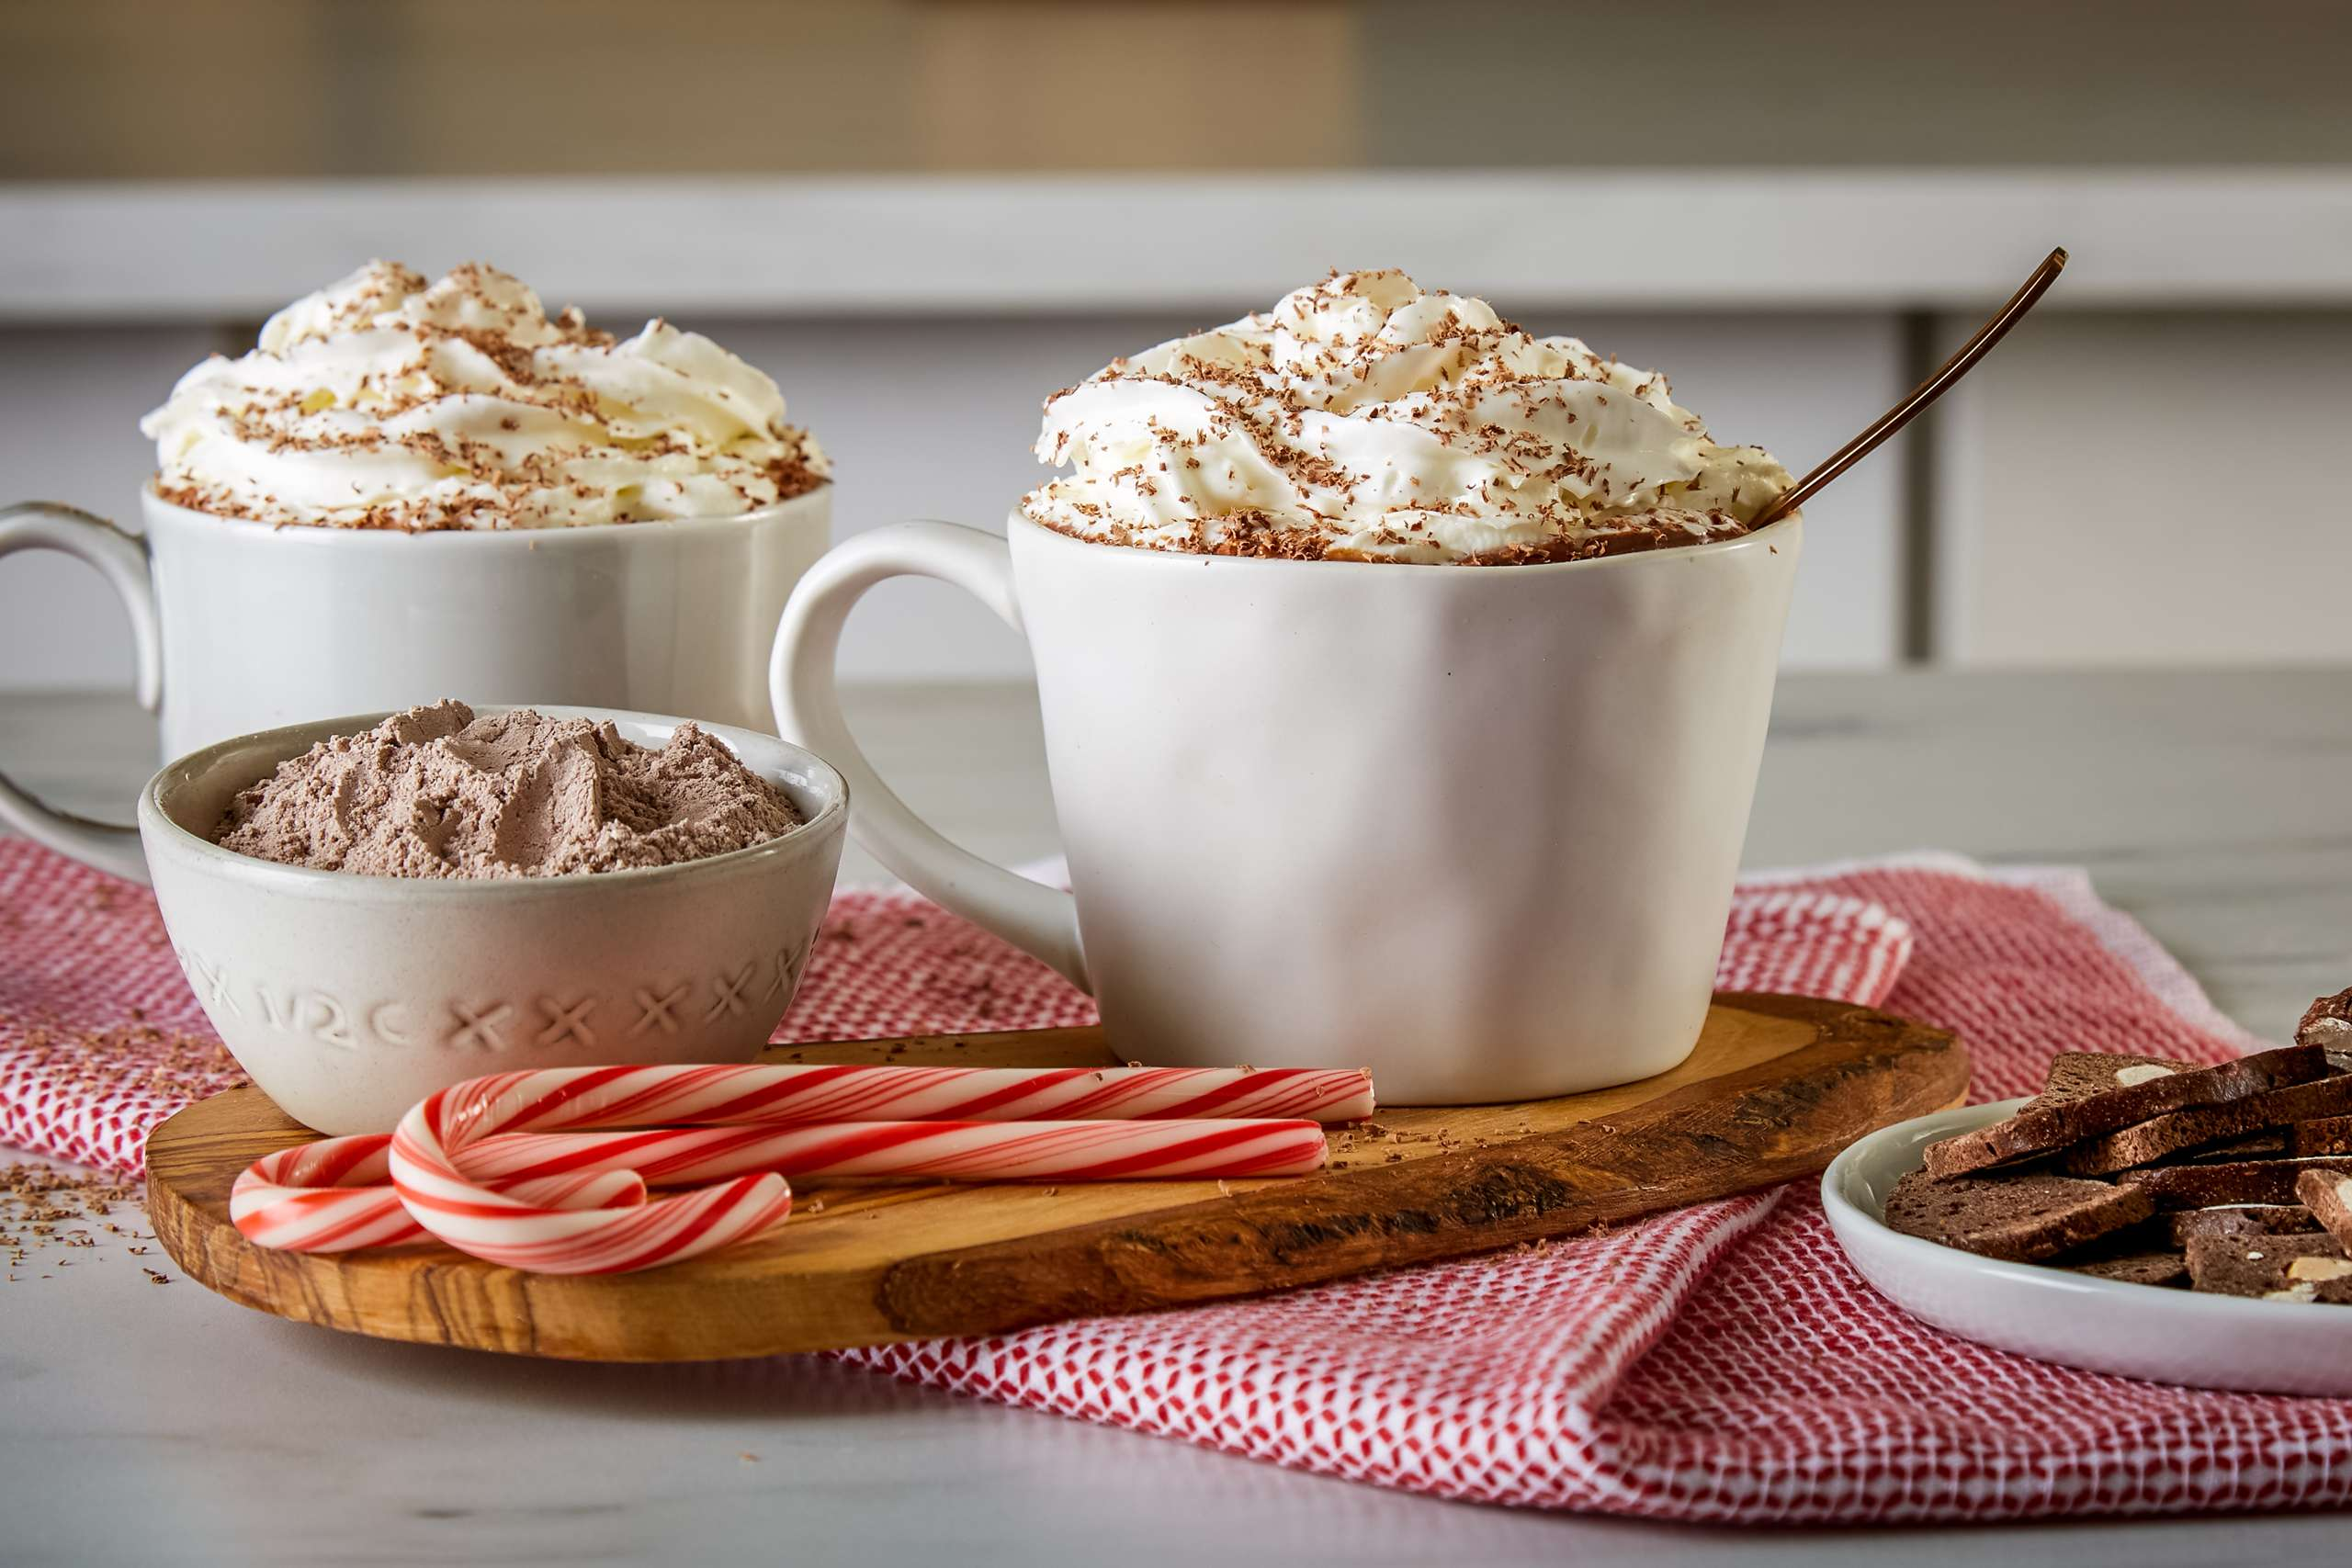 Marketing_HotChocolate_V229490.jpg